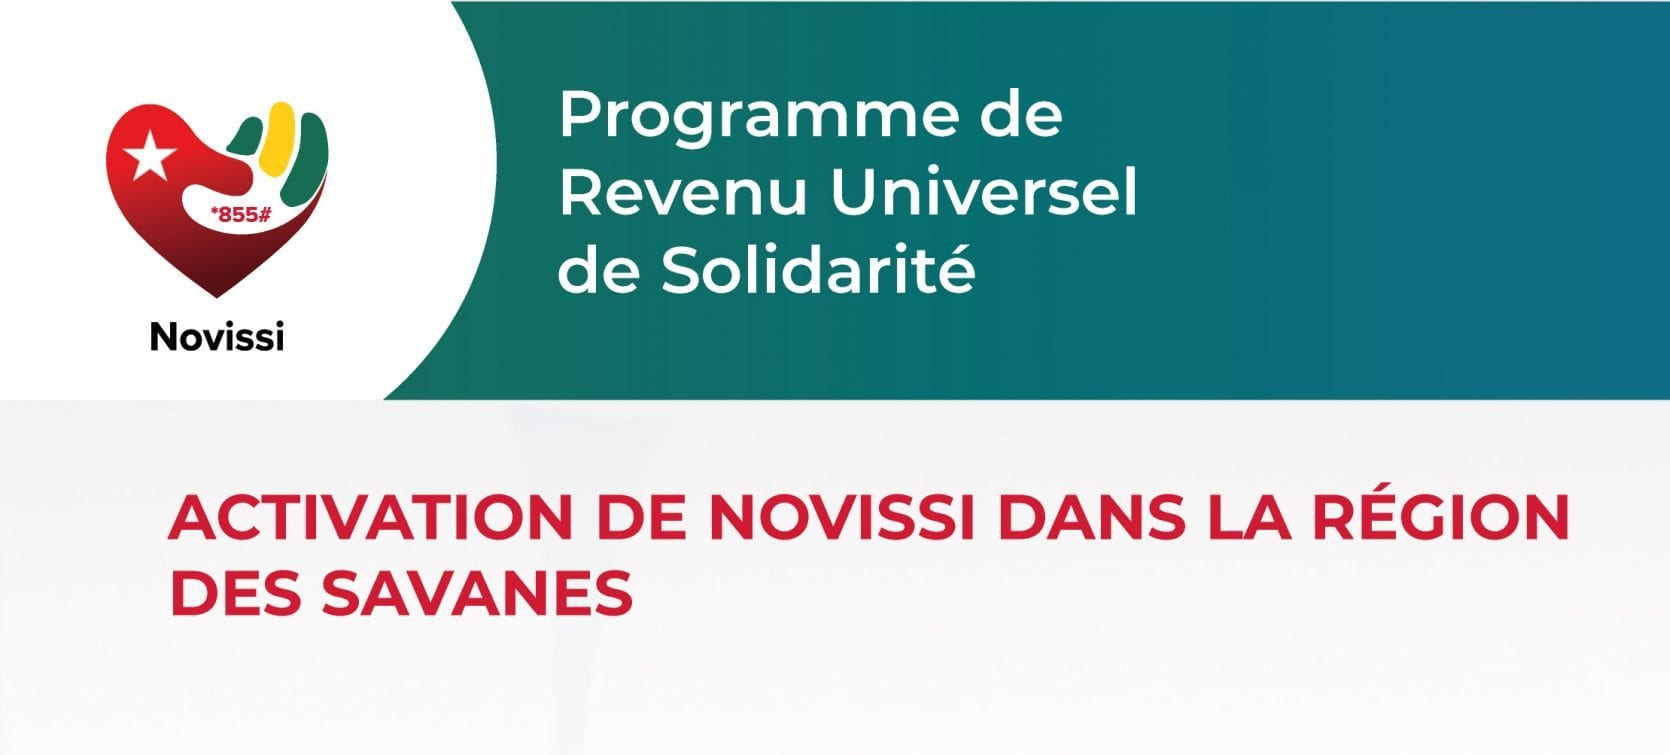 Exceptional round of NOVISSI cash transfers launched in the Savannah region